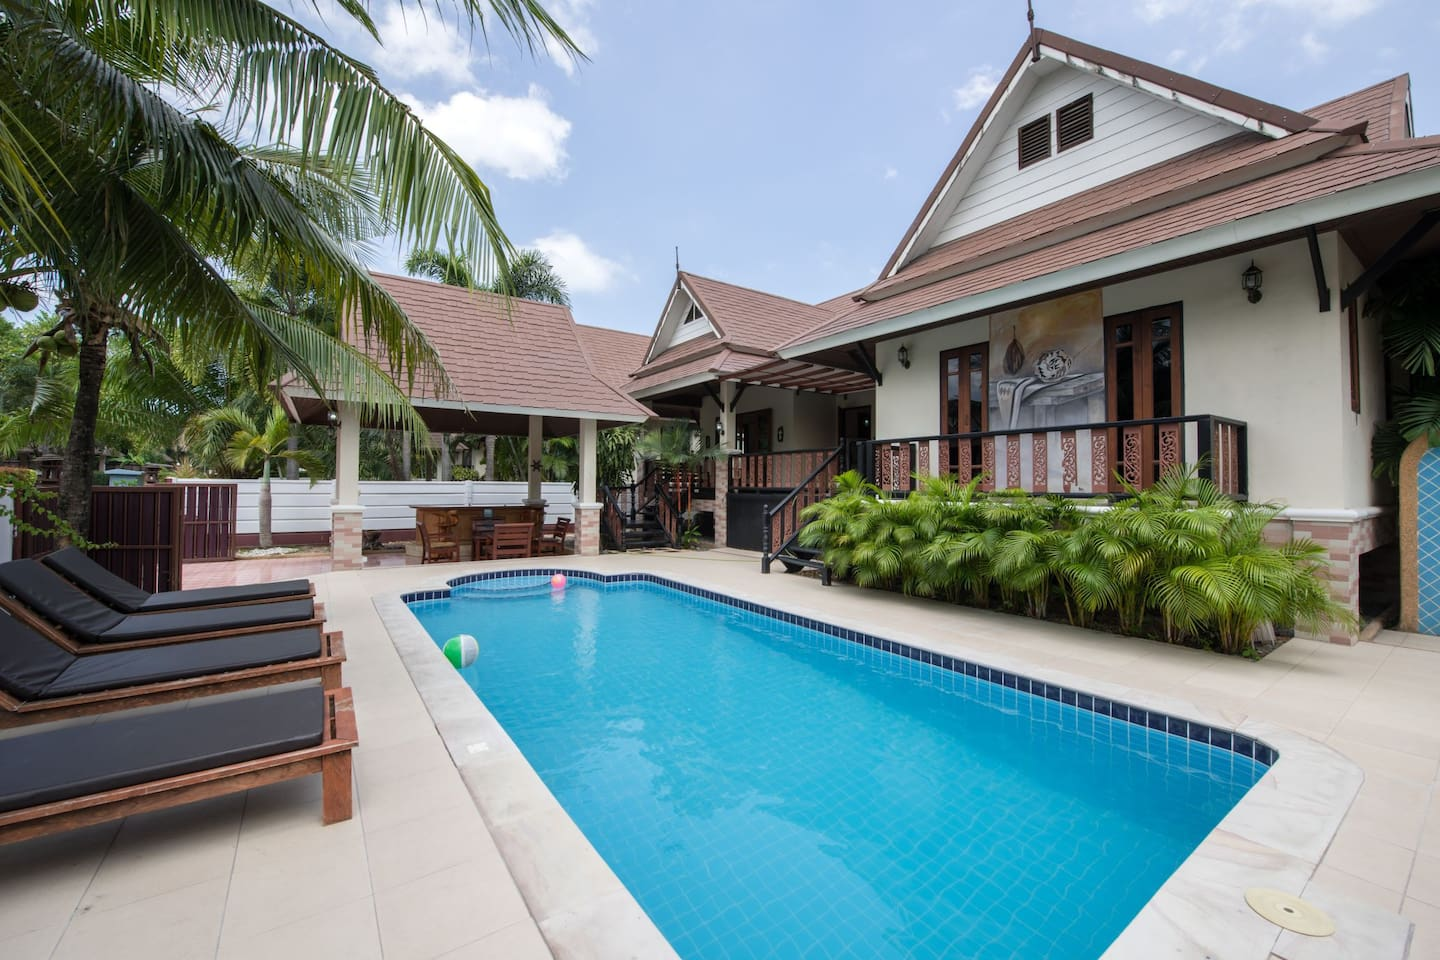 private villa with pool 8×4m land 400sqm living space 160 sqm